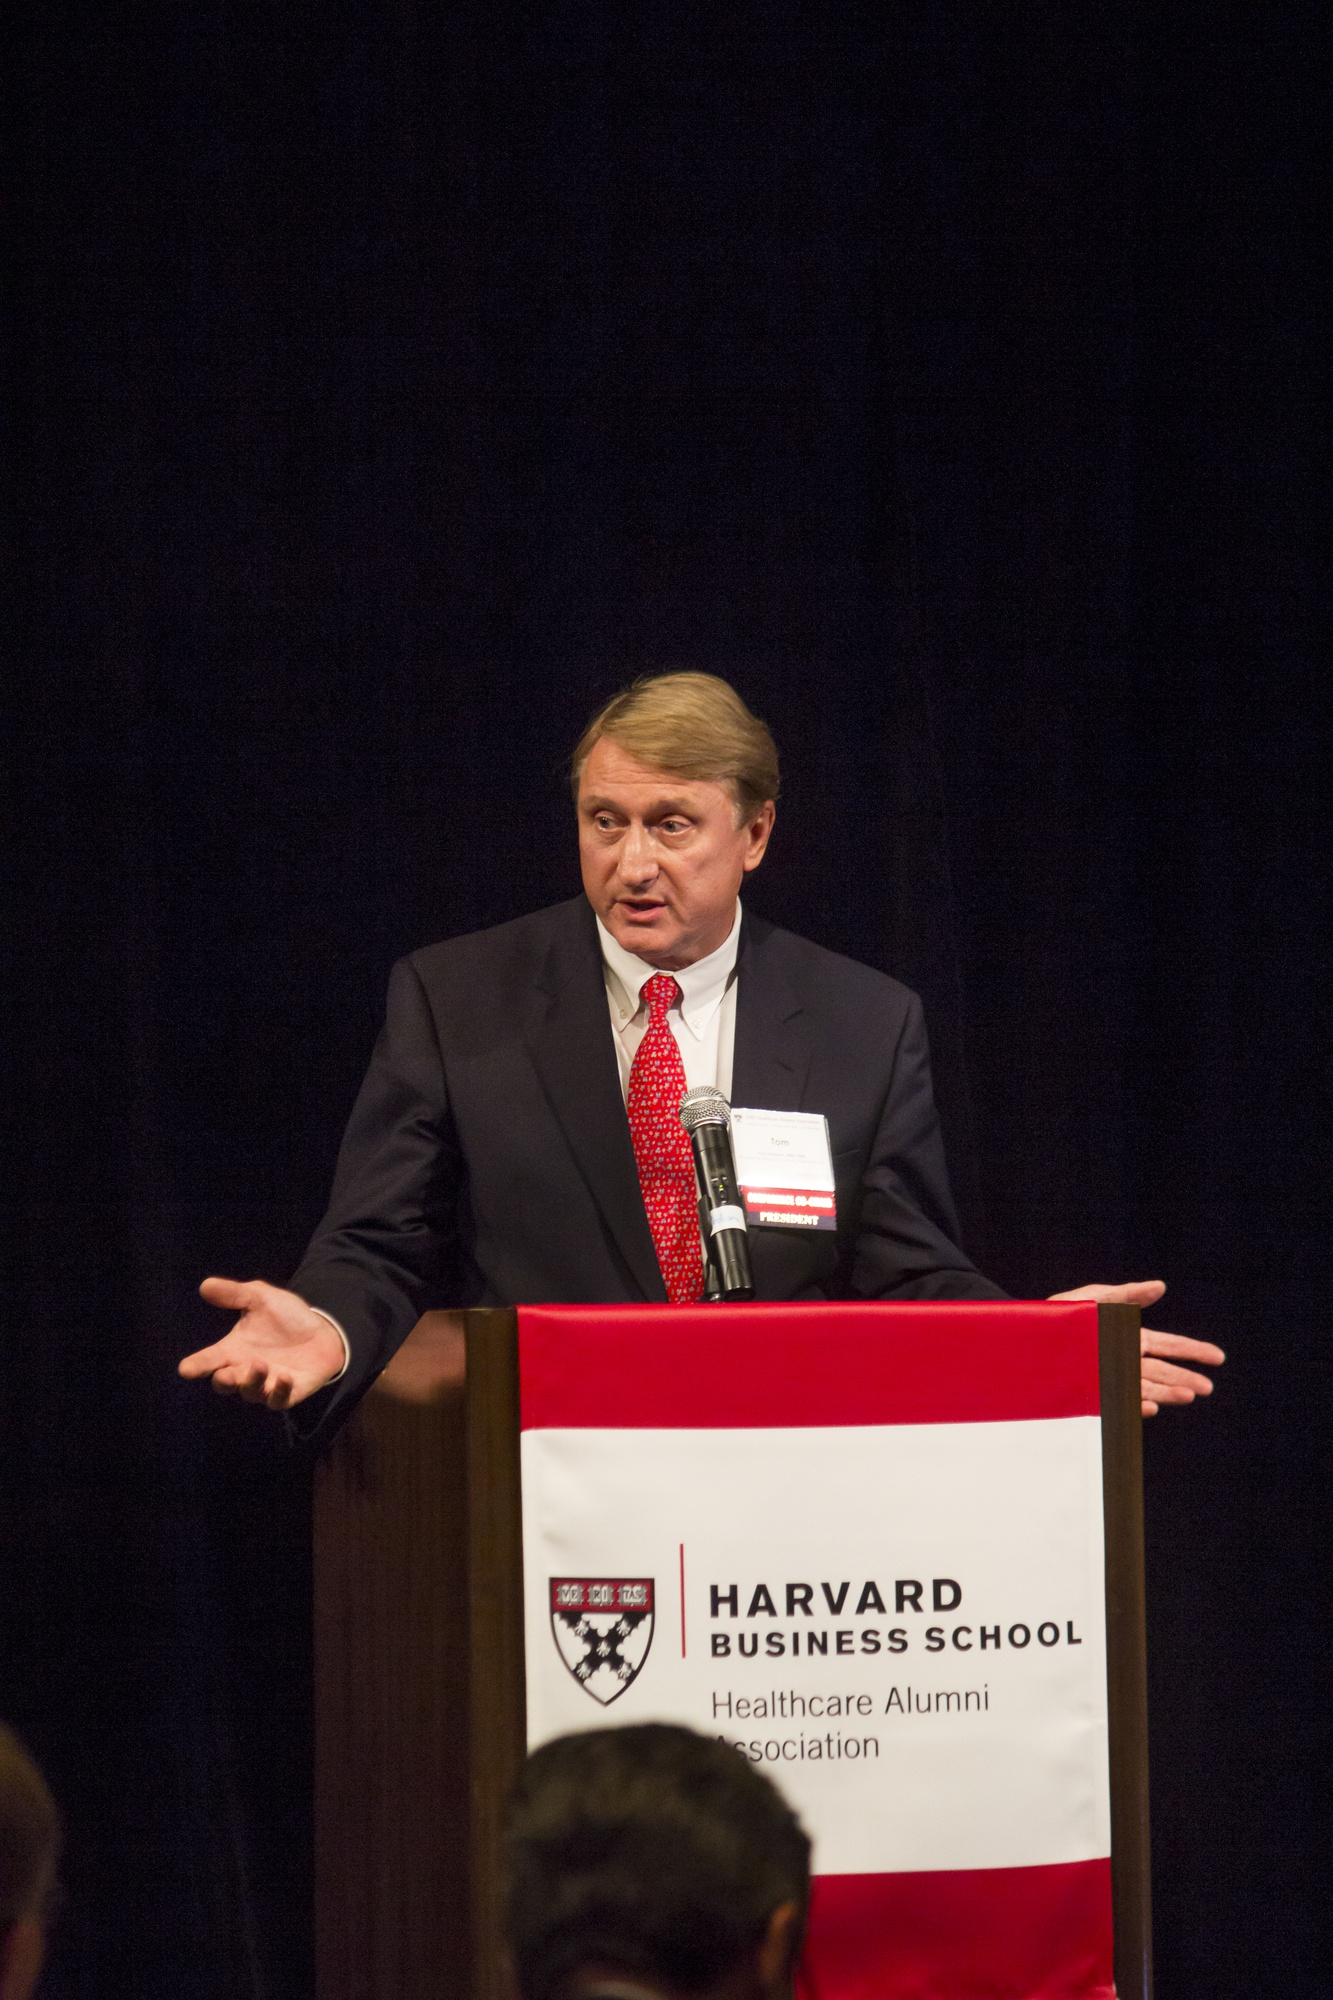 Tom Robinson, president of the HBS Healthcare Alumni Association, gives the keynote speach to kick off the two-day long Alumni conference.